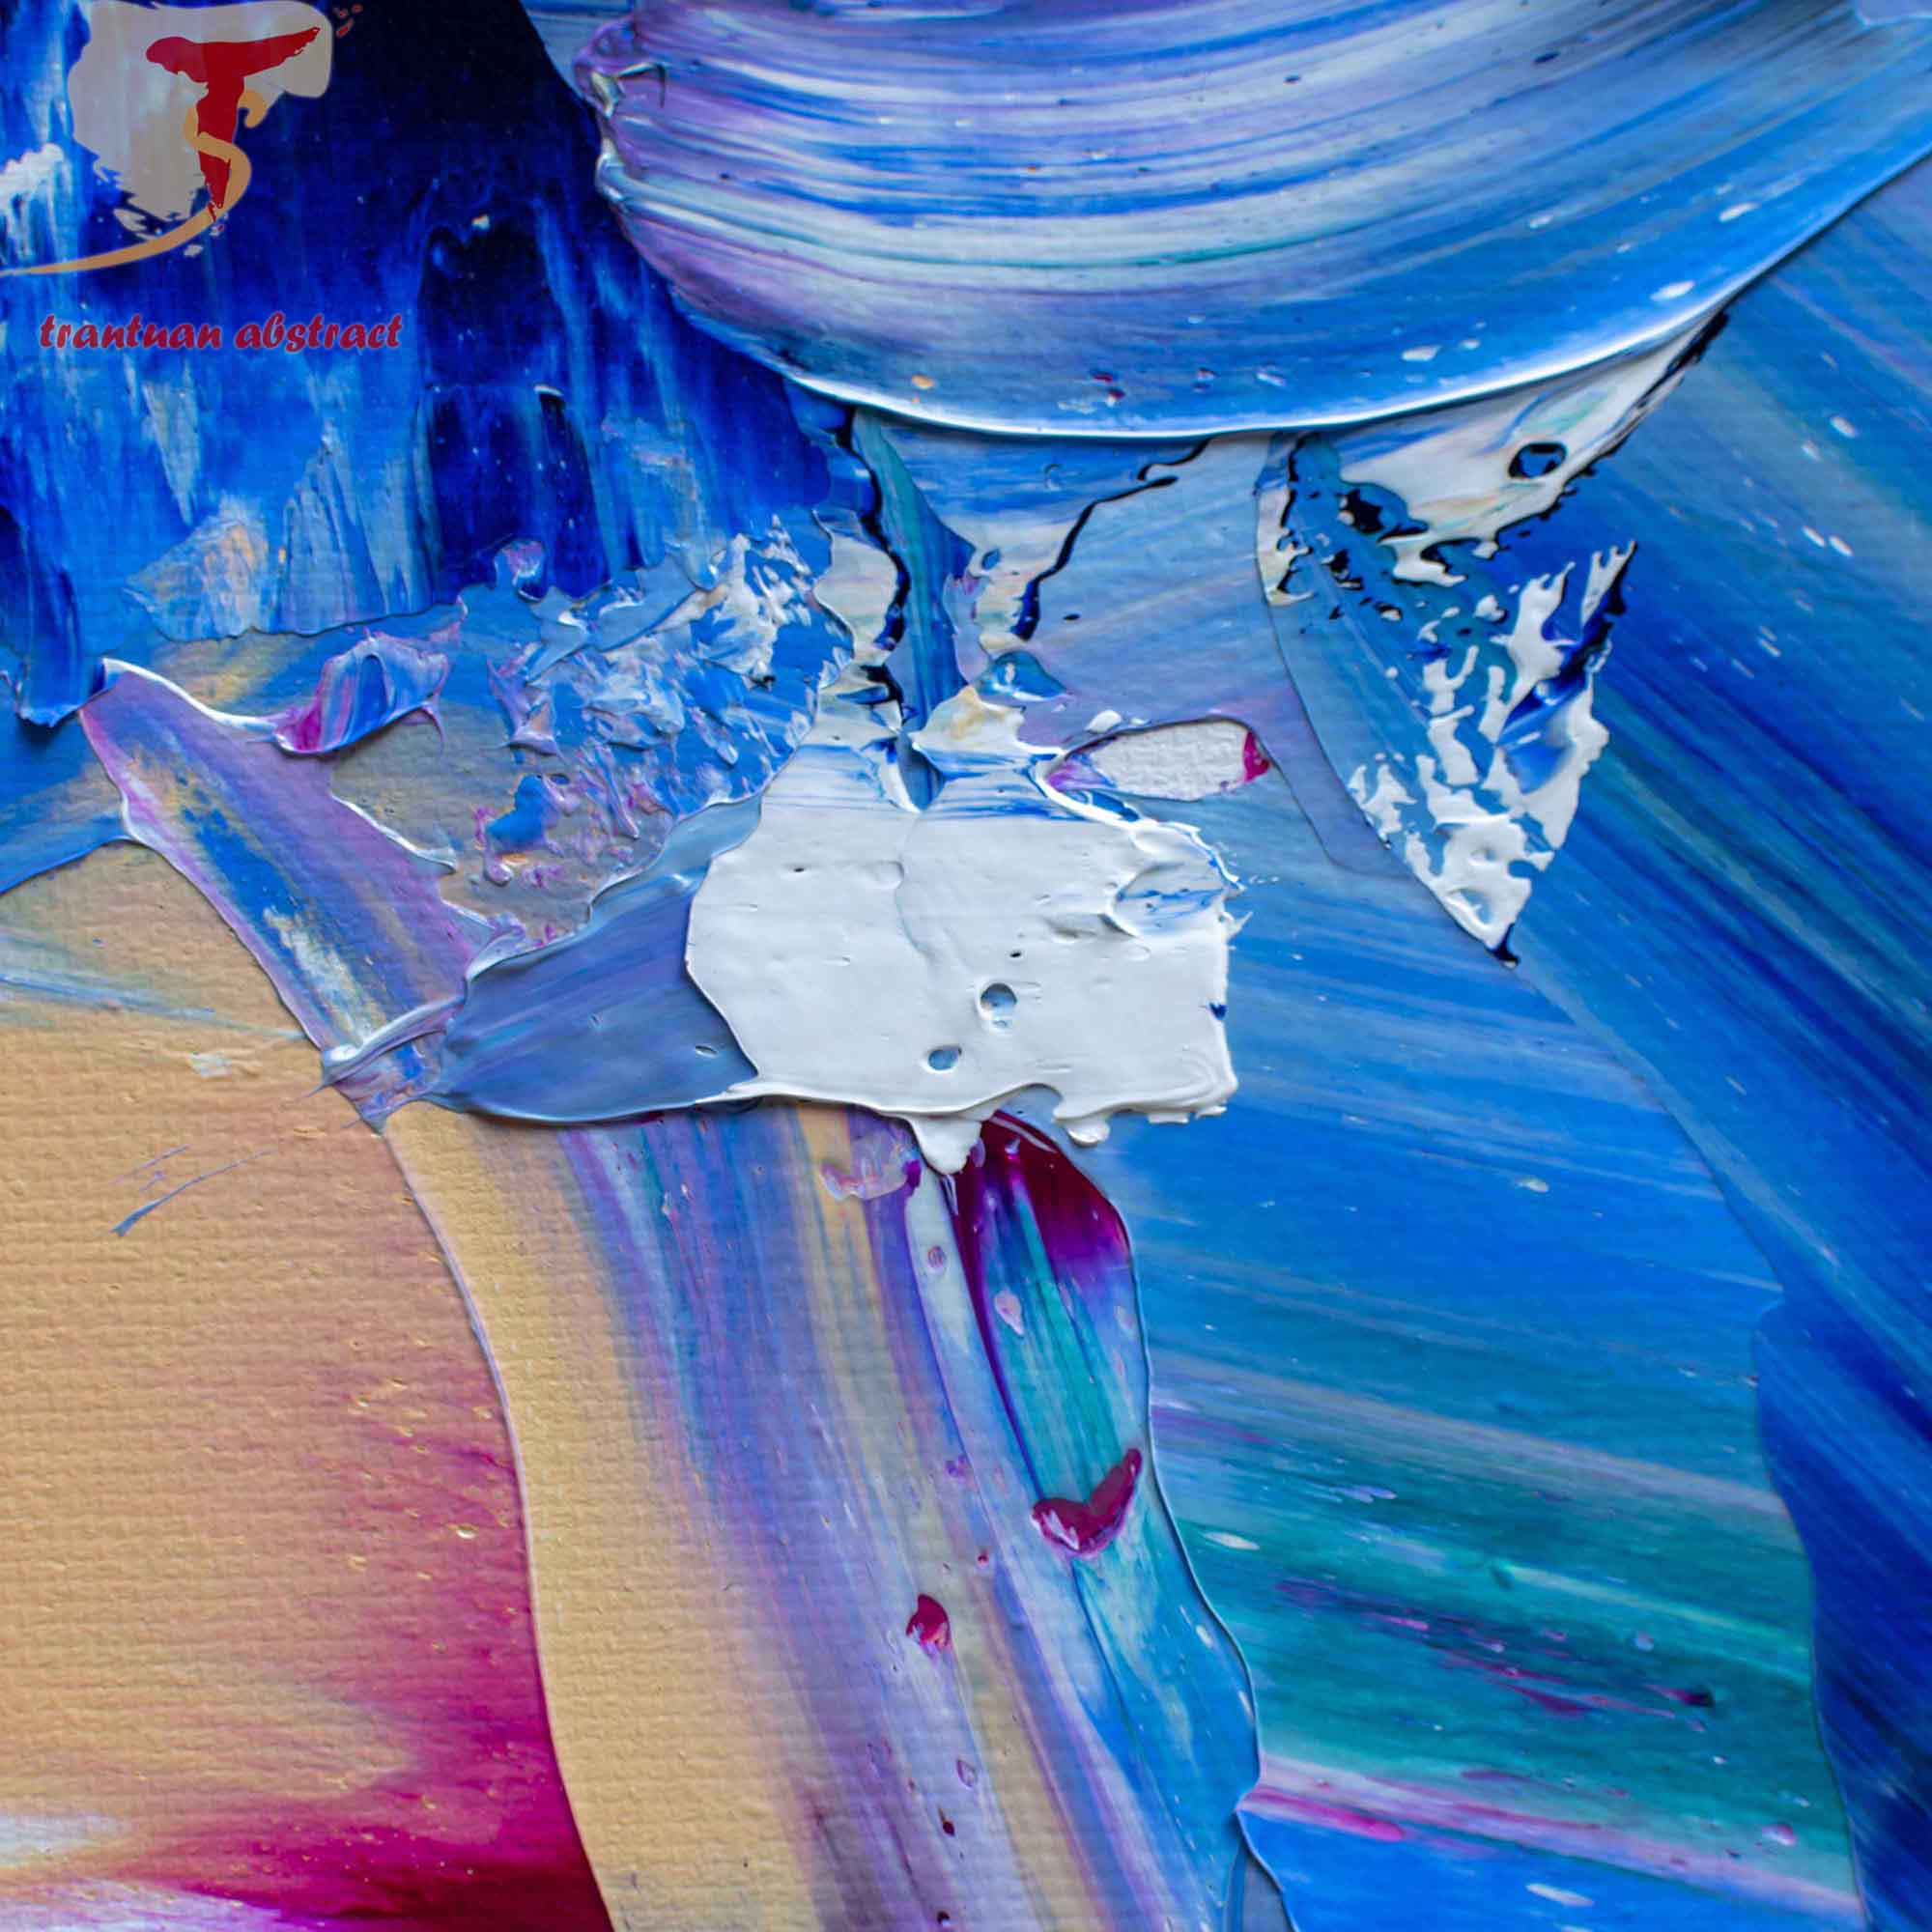 Tran Tuan Abstract Melody of Light 2021 135 x 80 x 5 cm Acrylic on Canvas Painting Detail s (25)